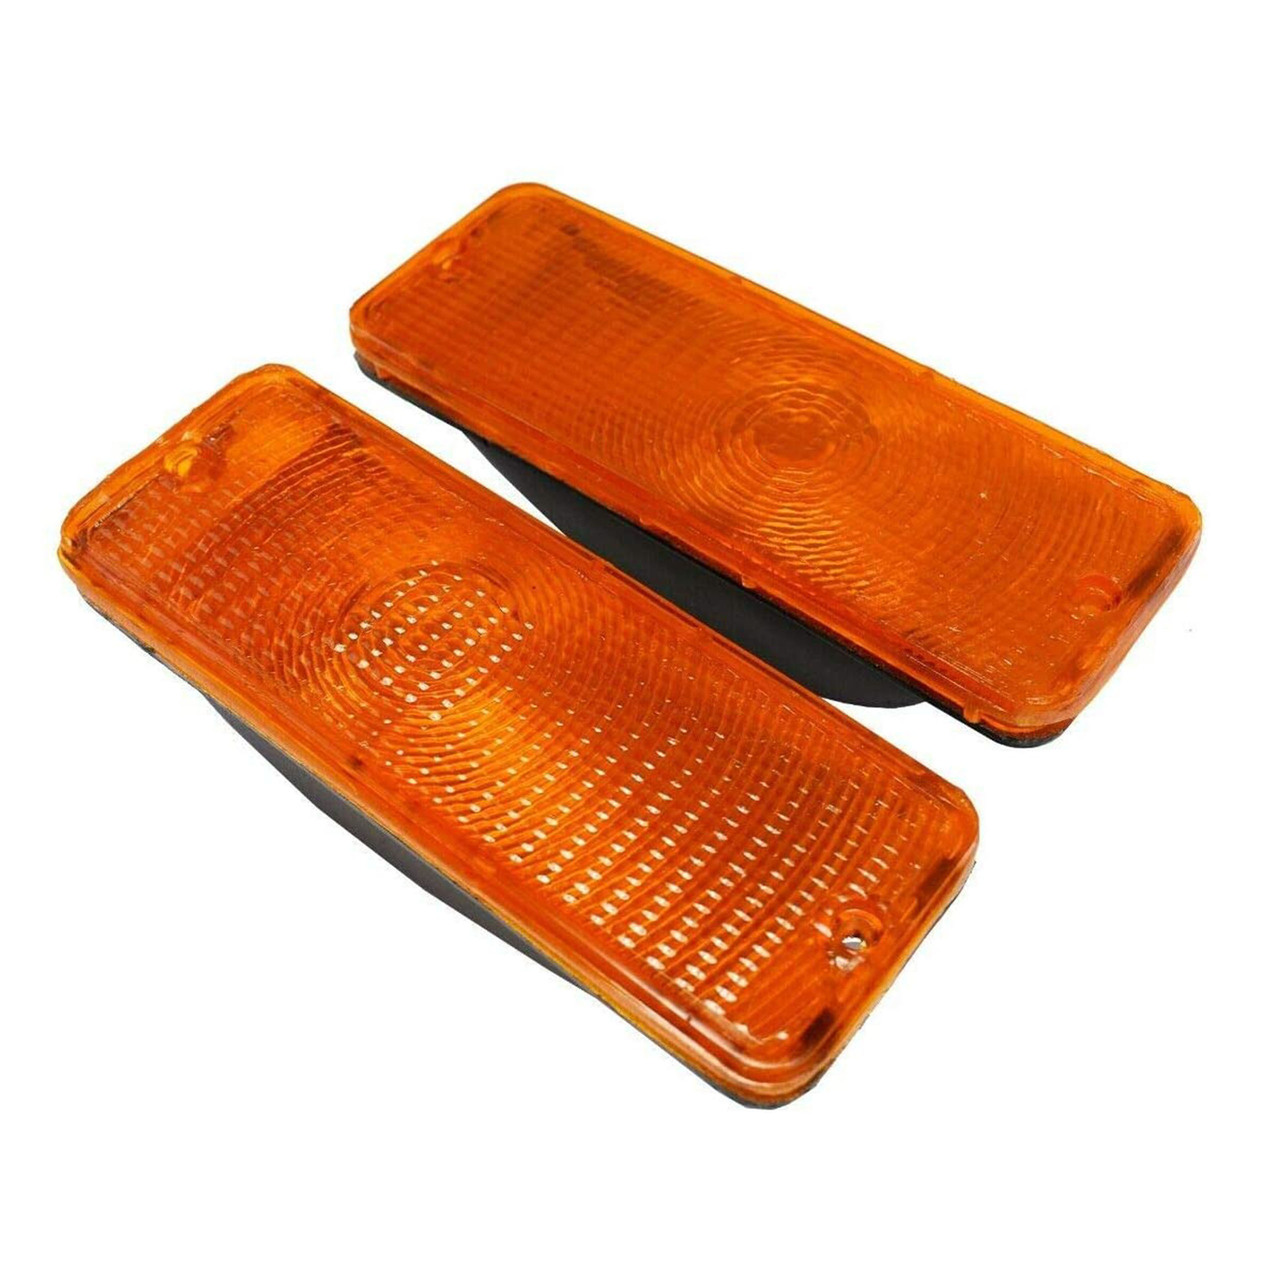 A-Team Performance Front Turn Signal Lights for 73 74 75 76 77 FORD F-150 F150 F250 F350 Truck, Amber